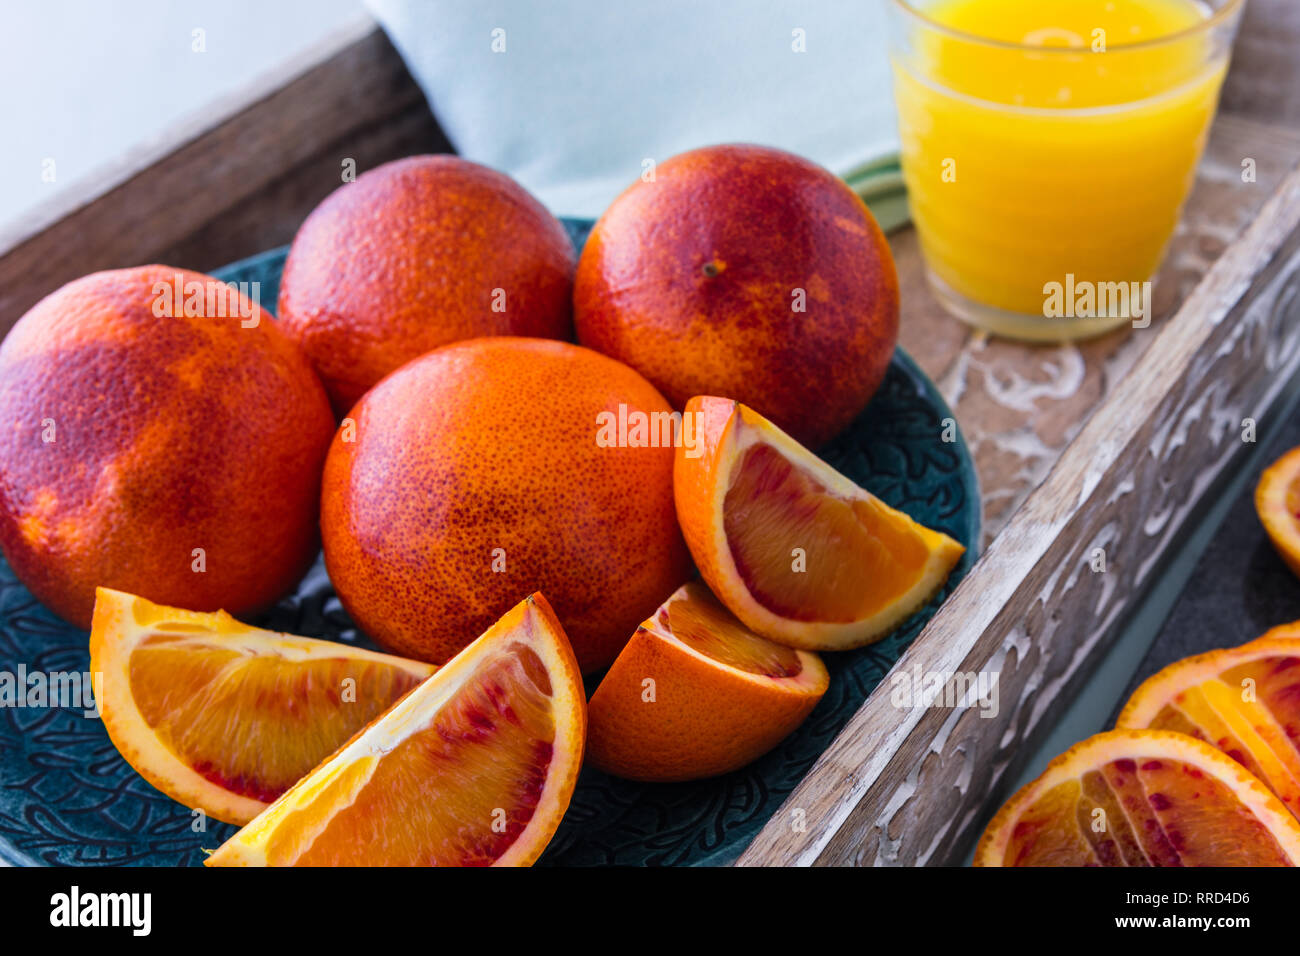 Blood Oranges Whole and Sliced on Plate and Tray with Glass of Orange Juice in Background Stock Photo